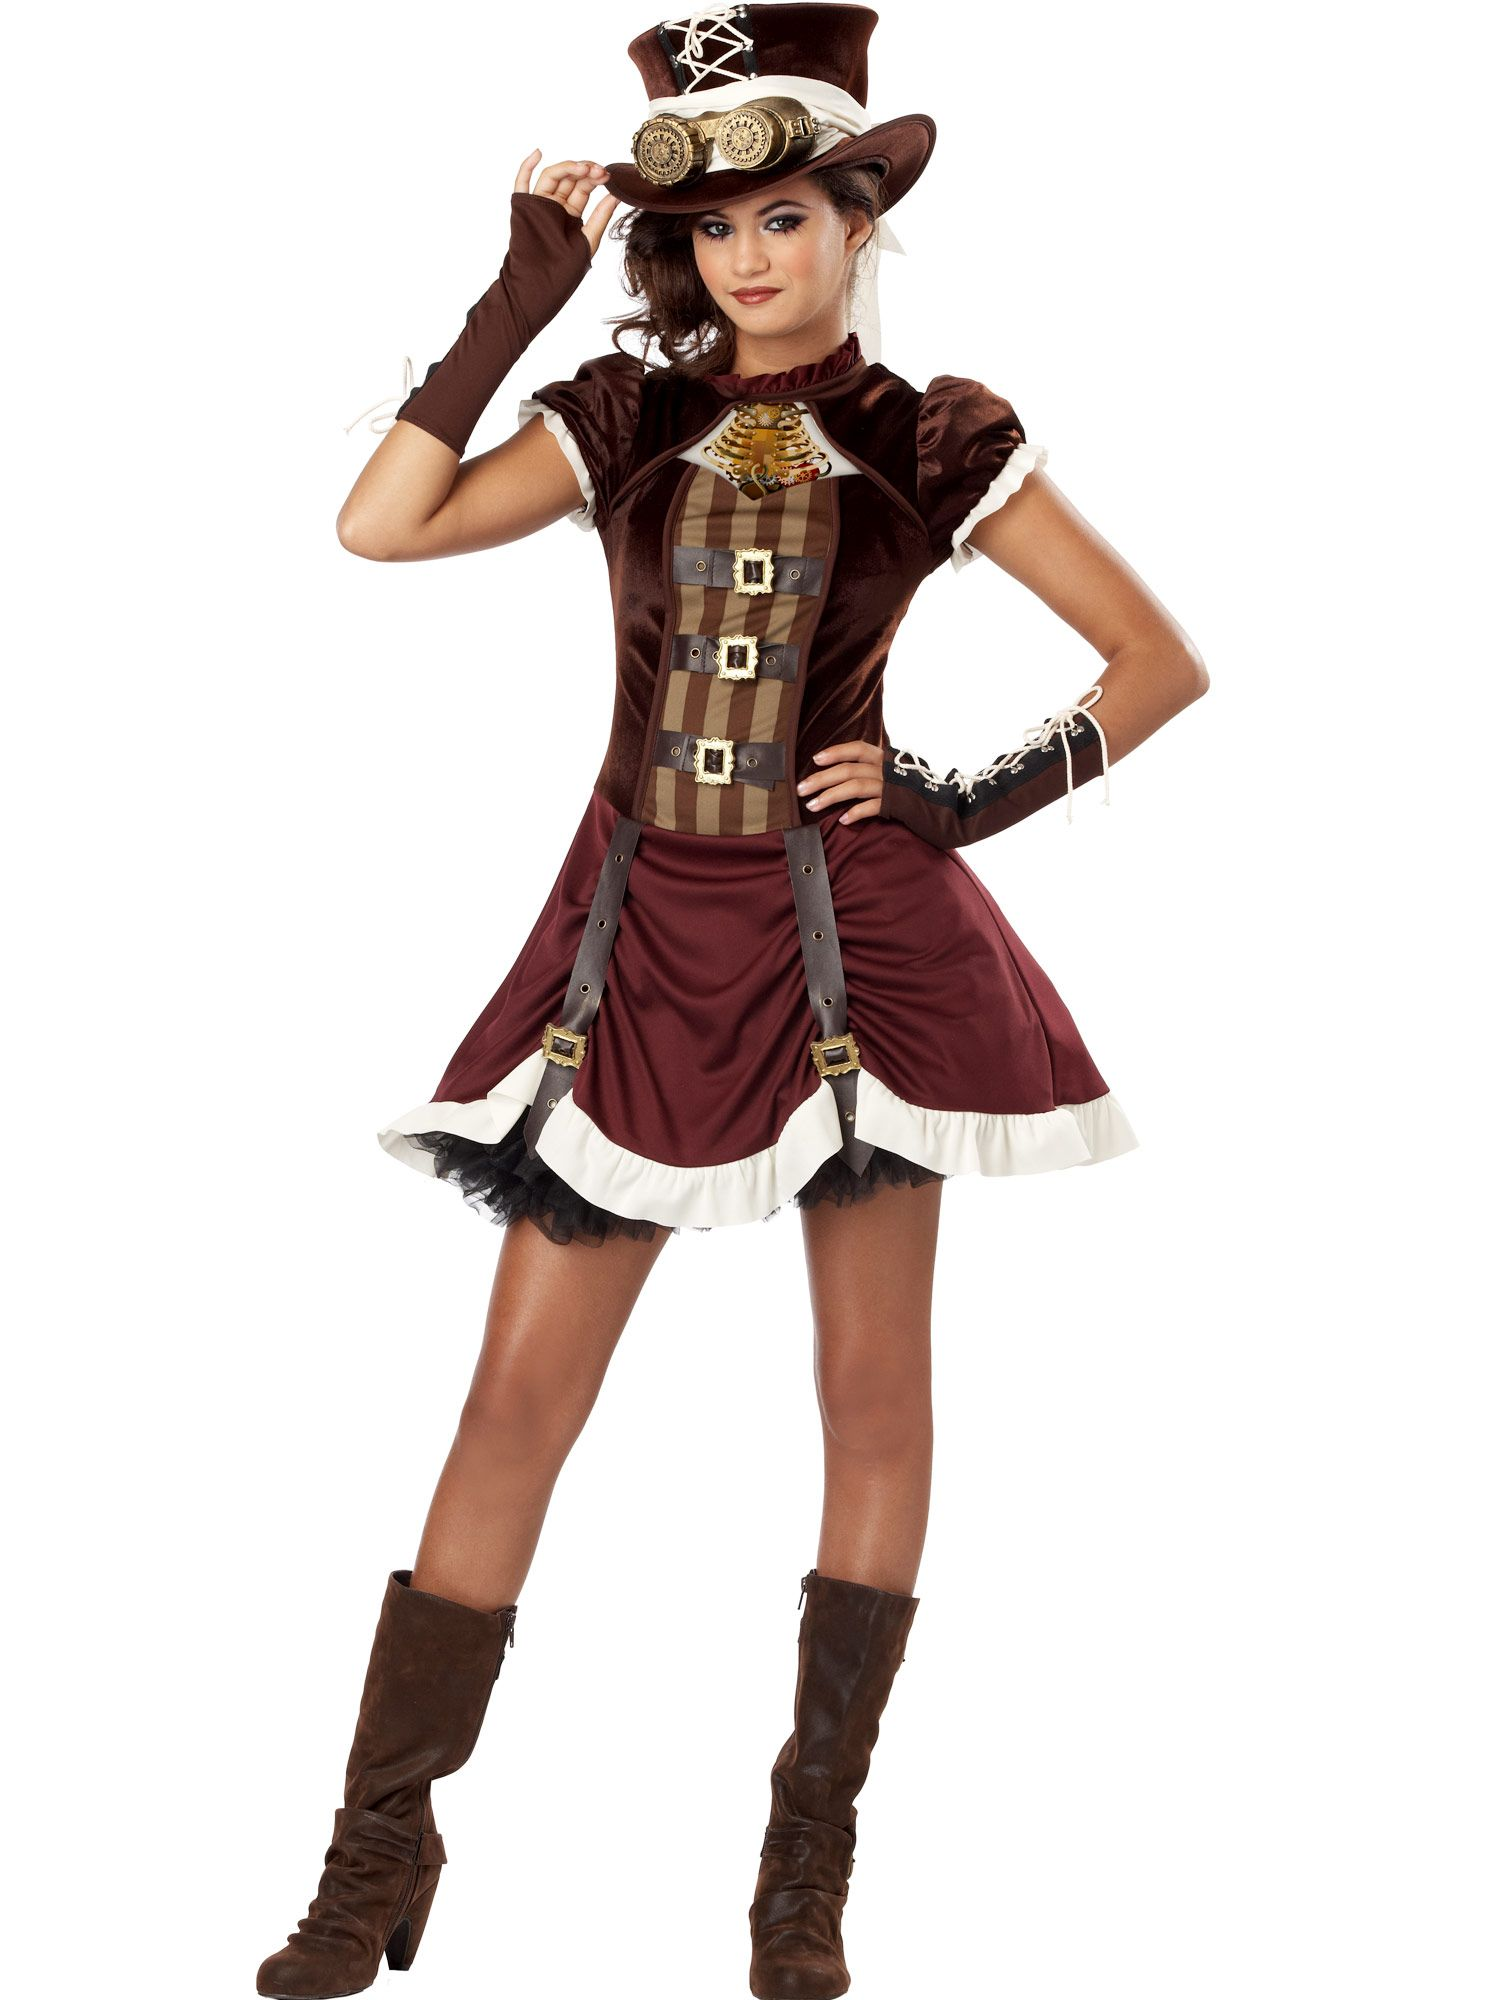 California Costumes Steampunk Costume For Girls